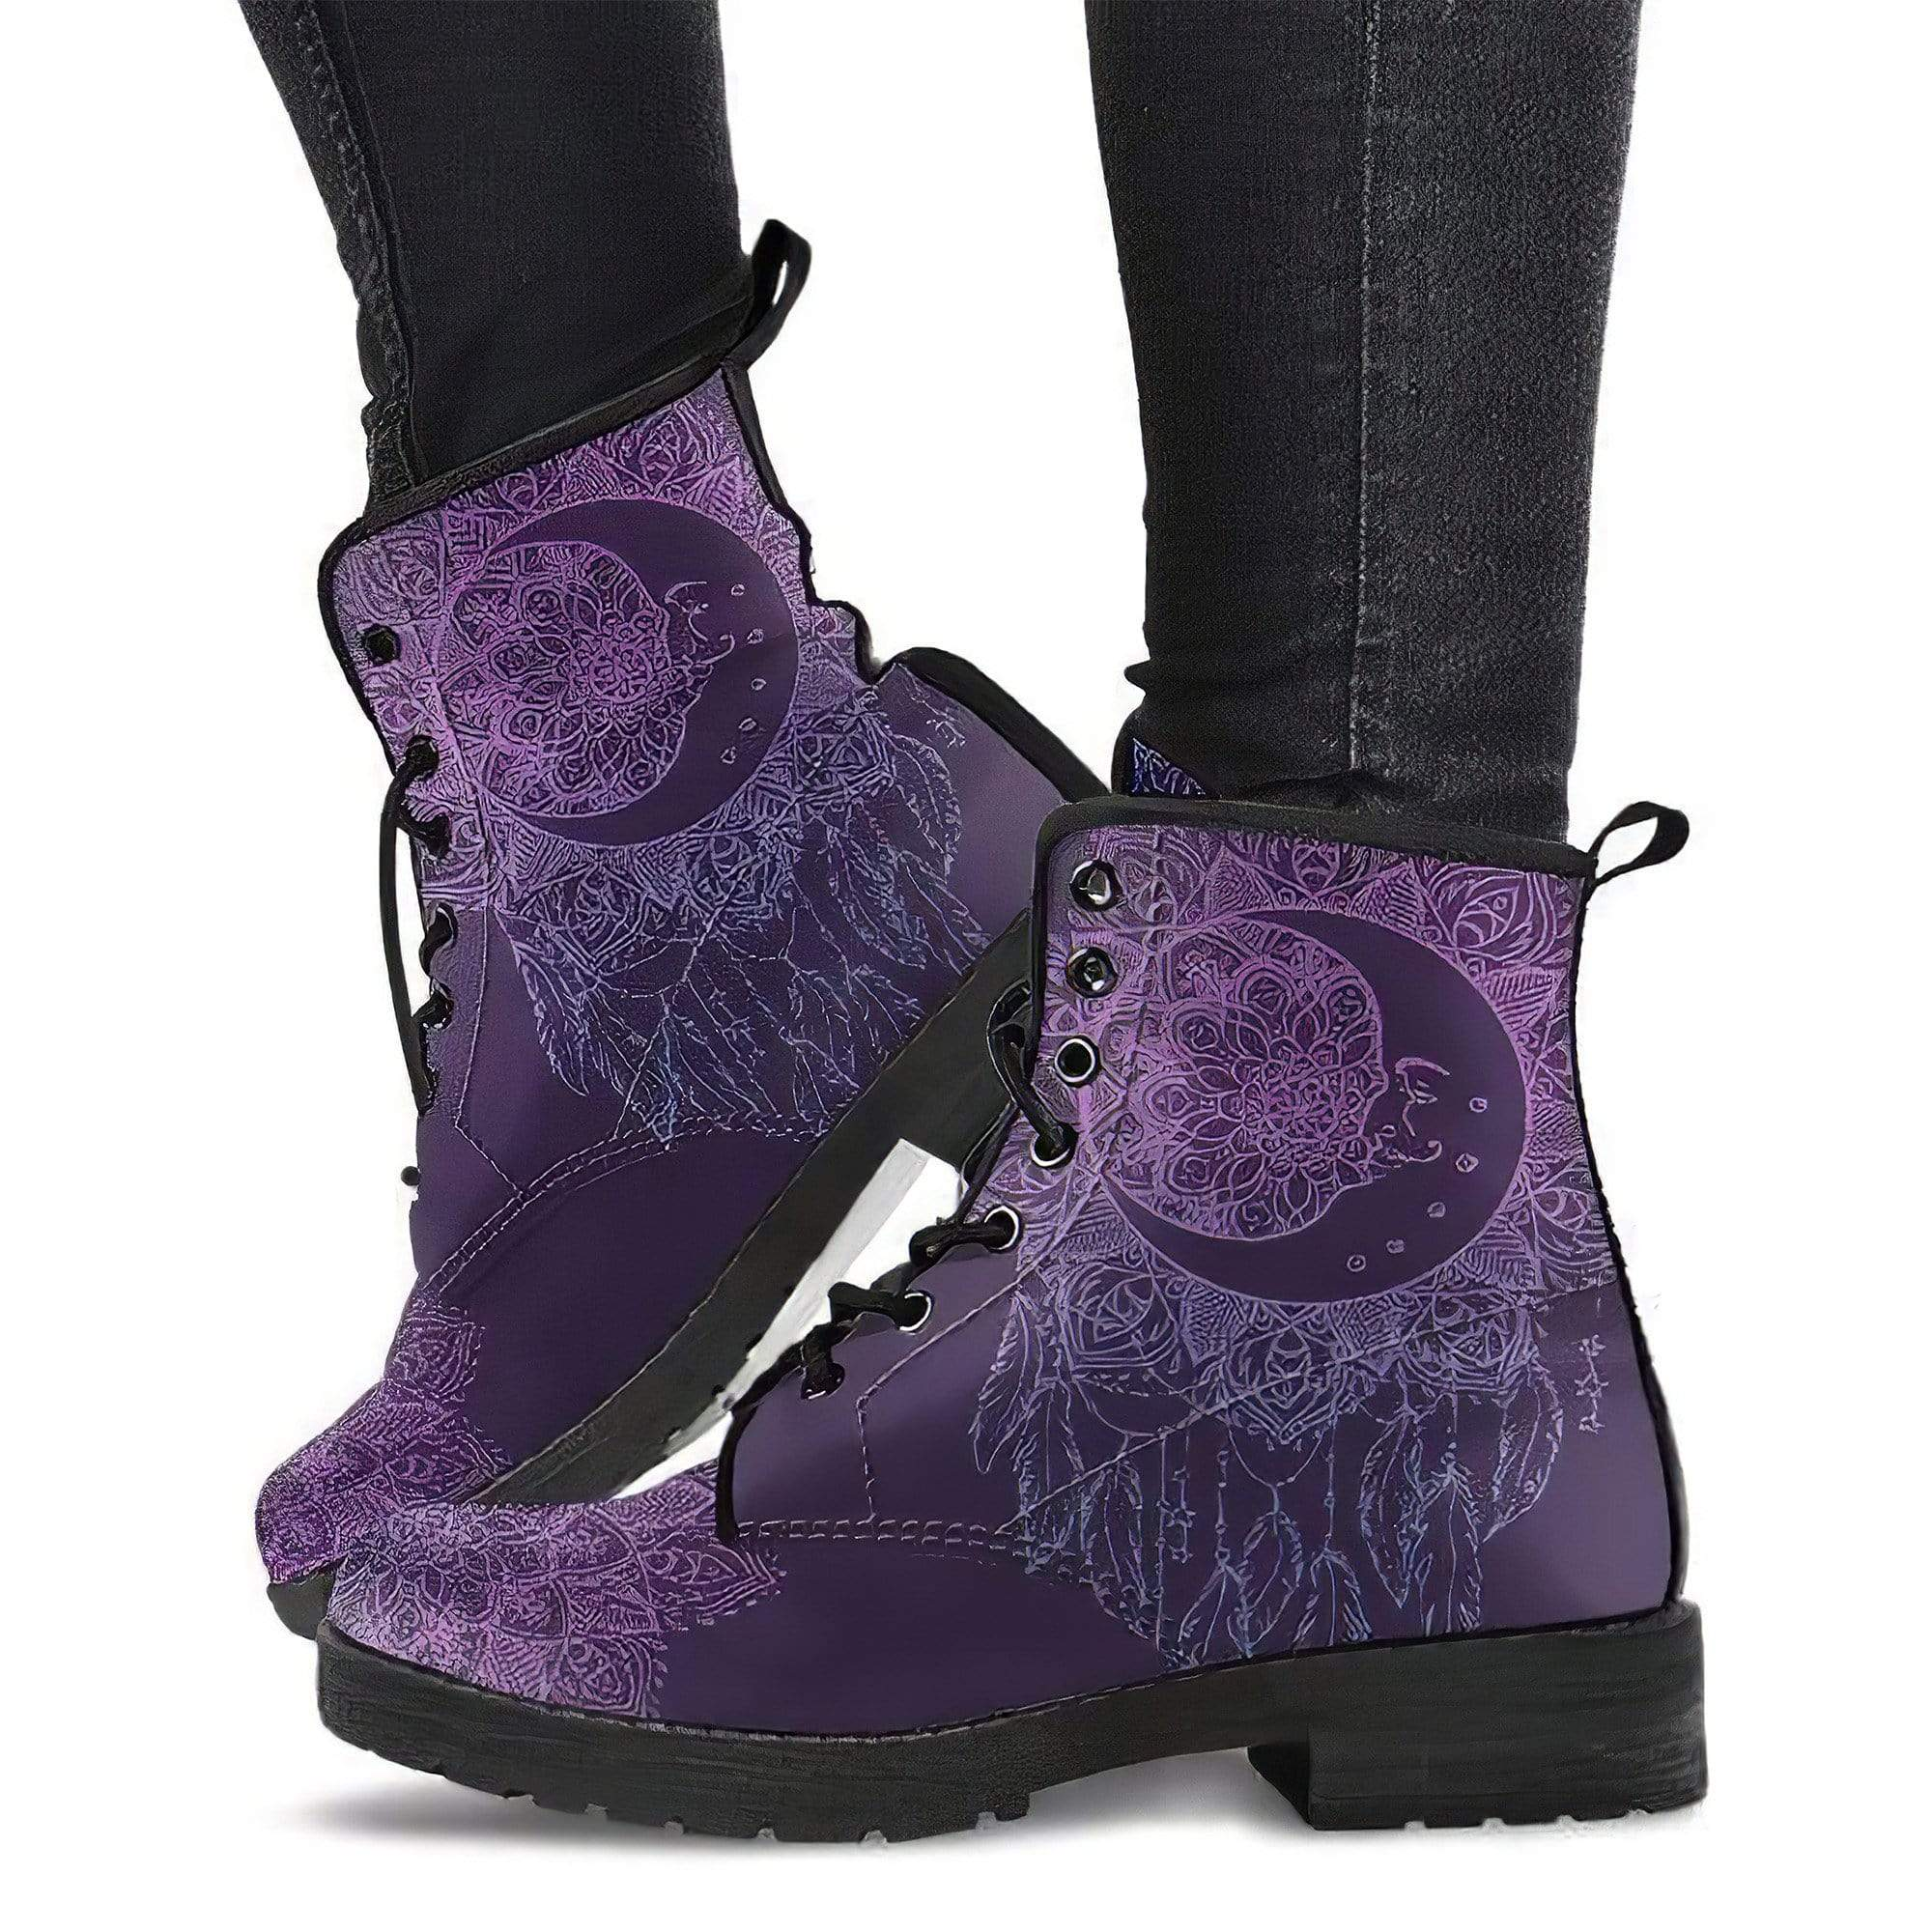 Purple Moon DreamCatcher Handcrafted Boots Women's Leather Boots